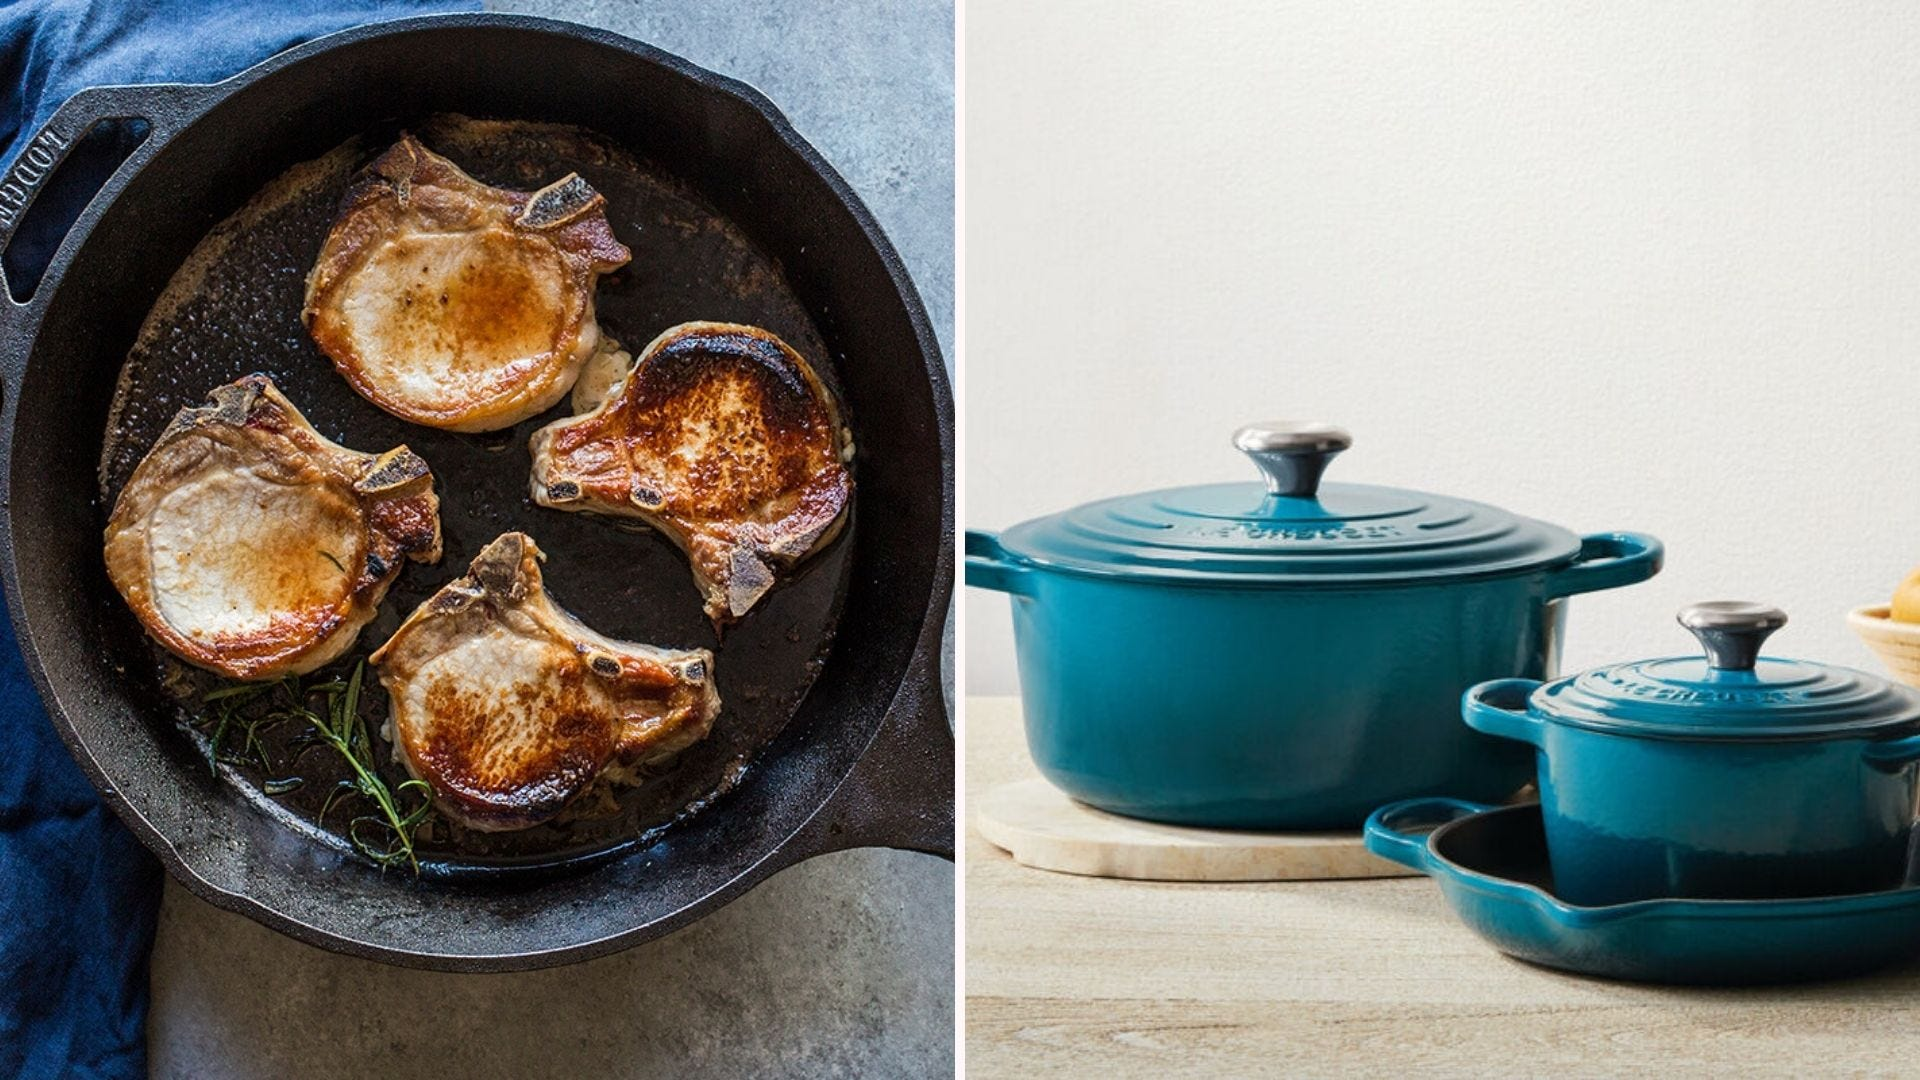 Birds-eye view of a cast iron skillet cooking four pieces of meat; two teal enameled pots sitting on a counter